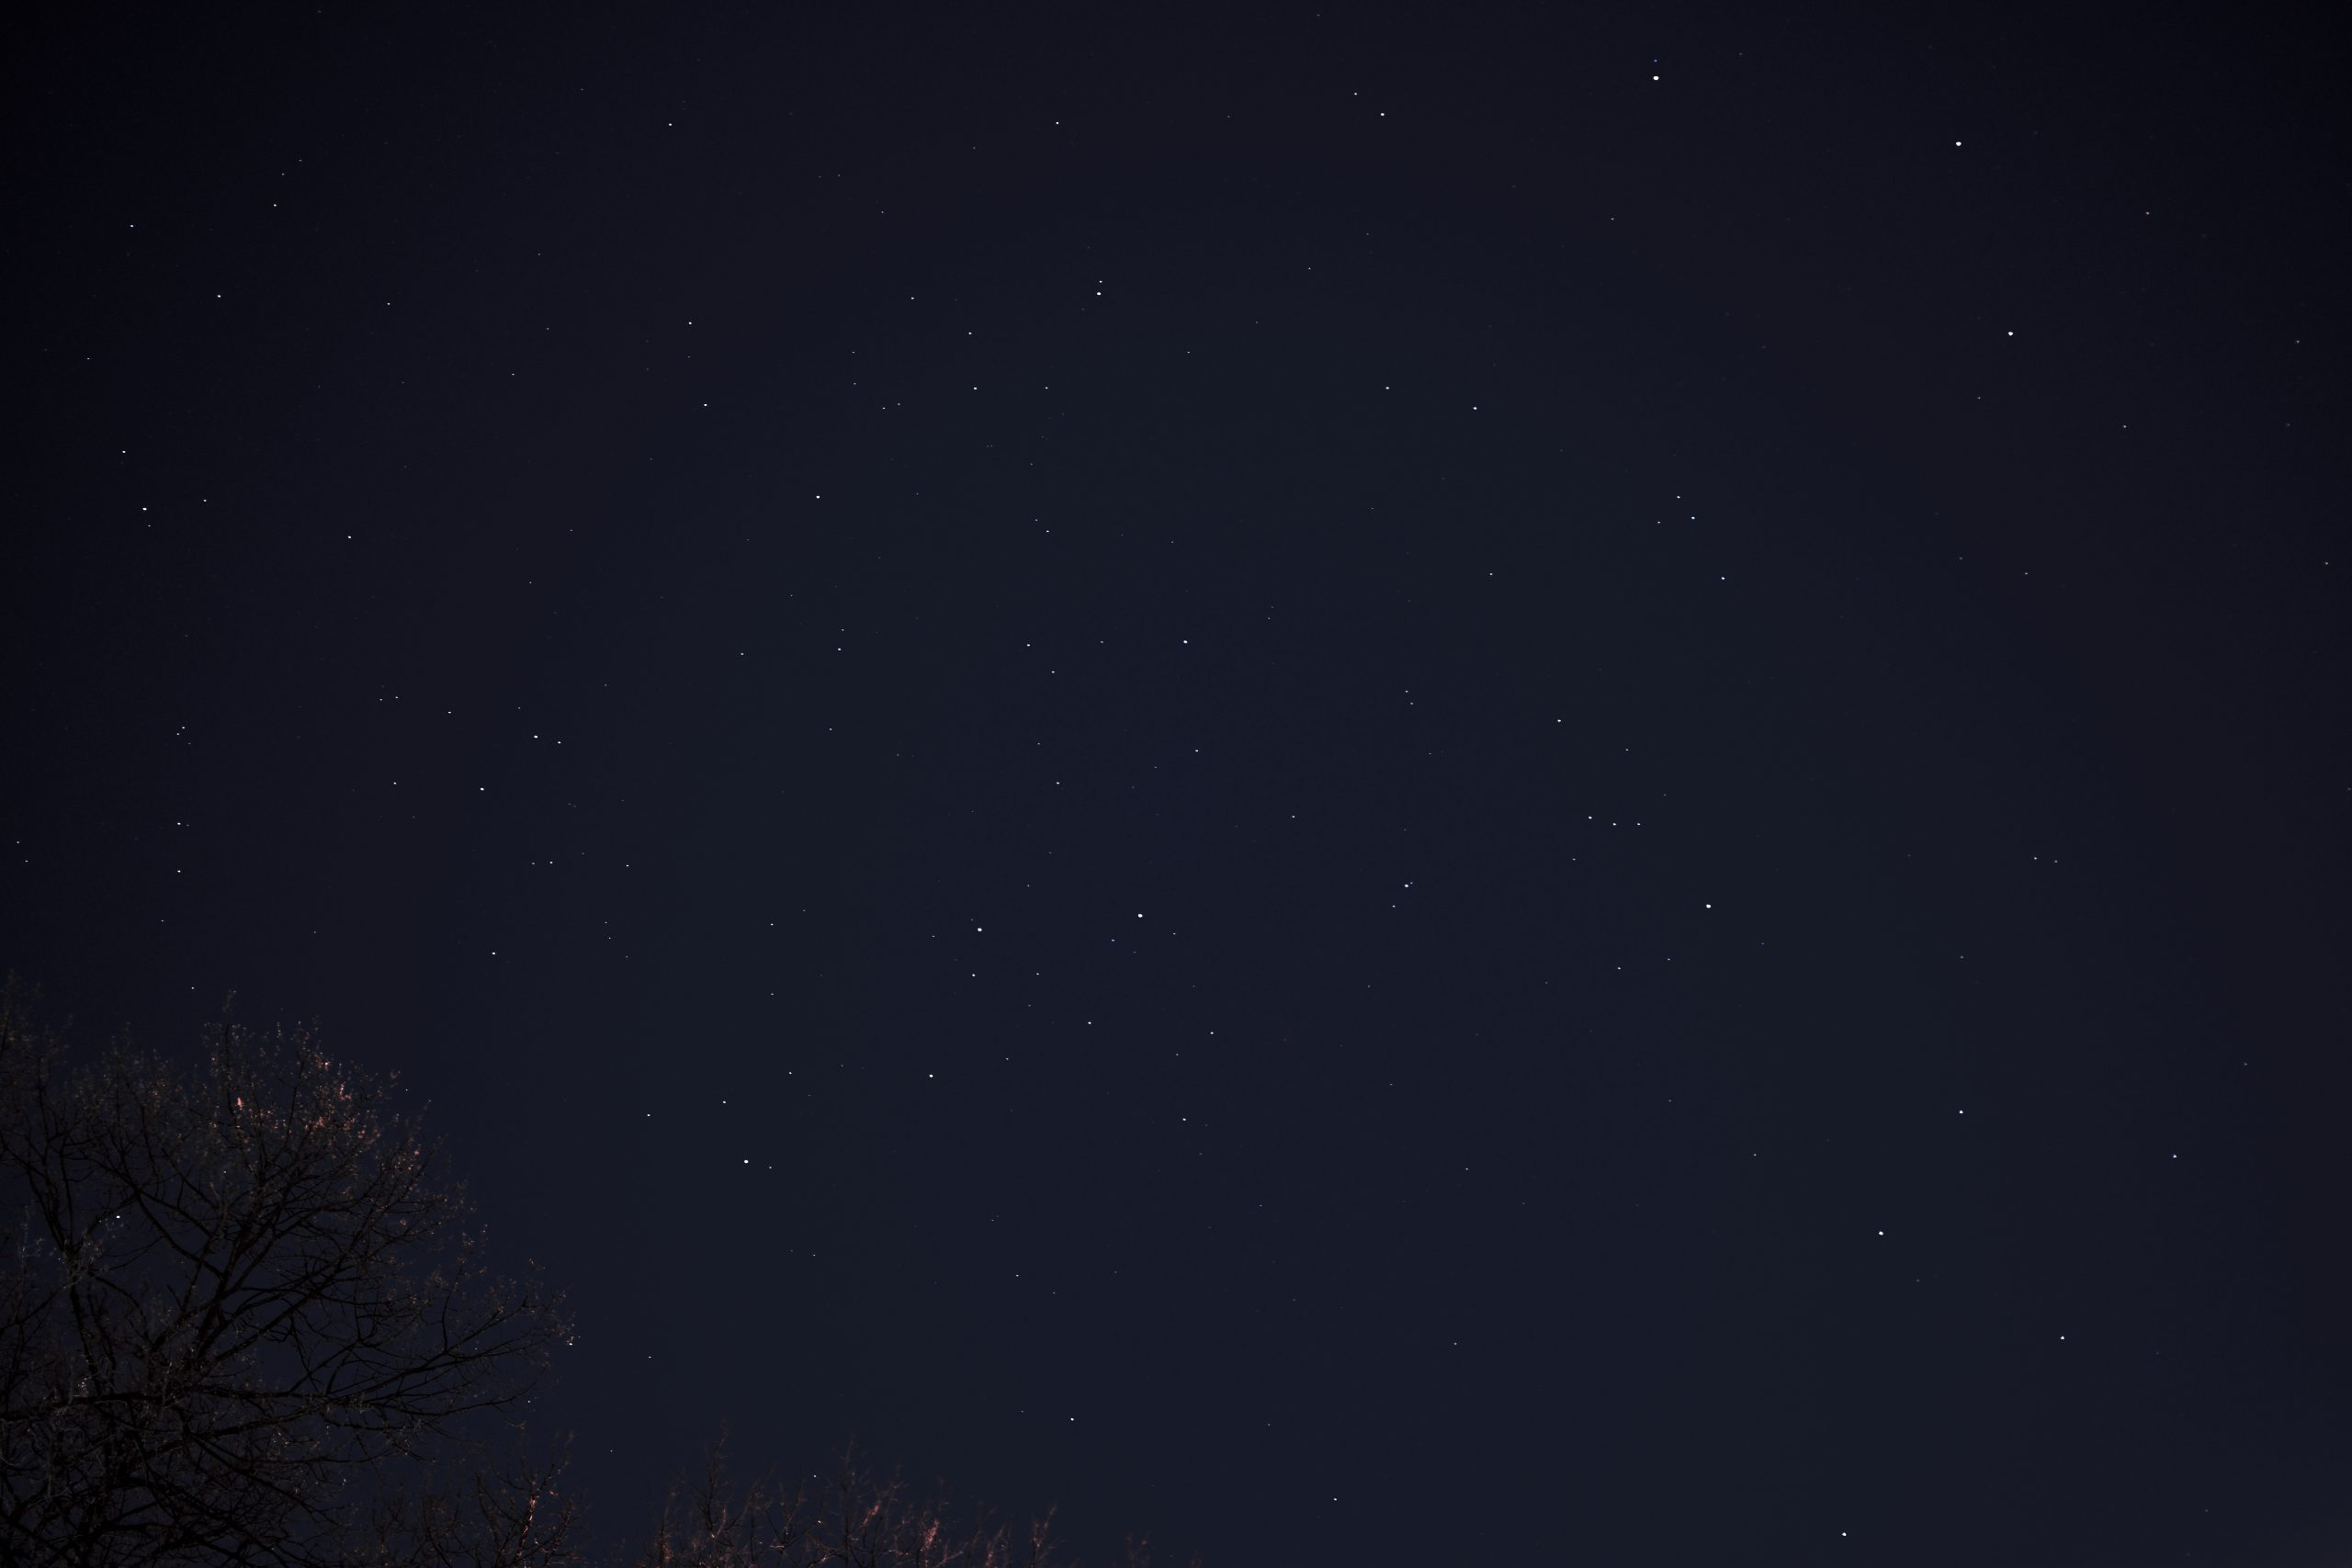 Stargazing in NYC, 8-hours worth of the night sky featuring the constellation Orion.